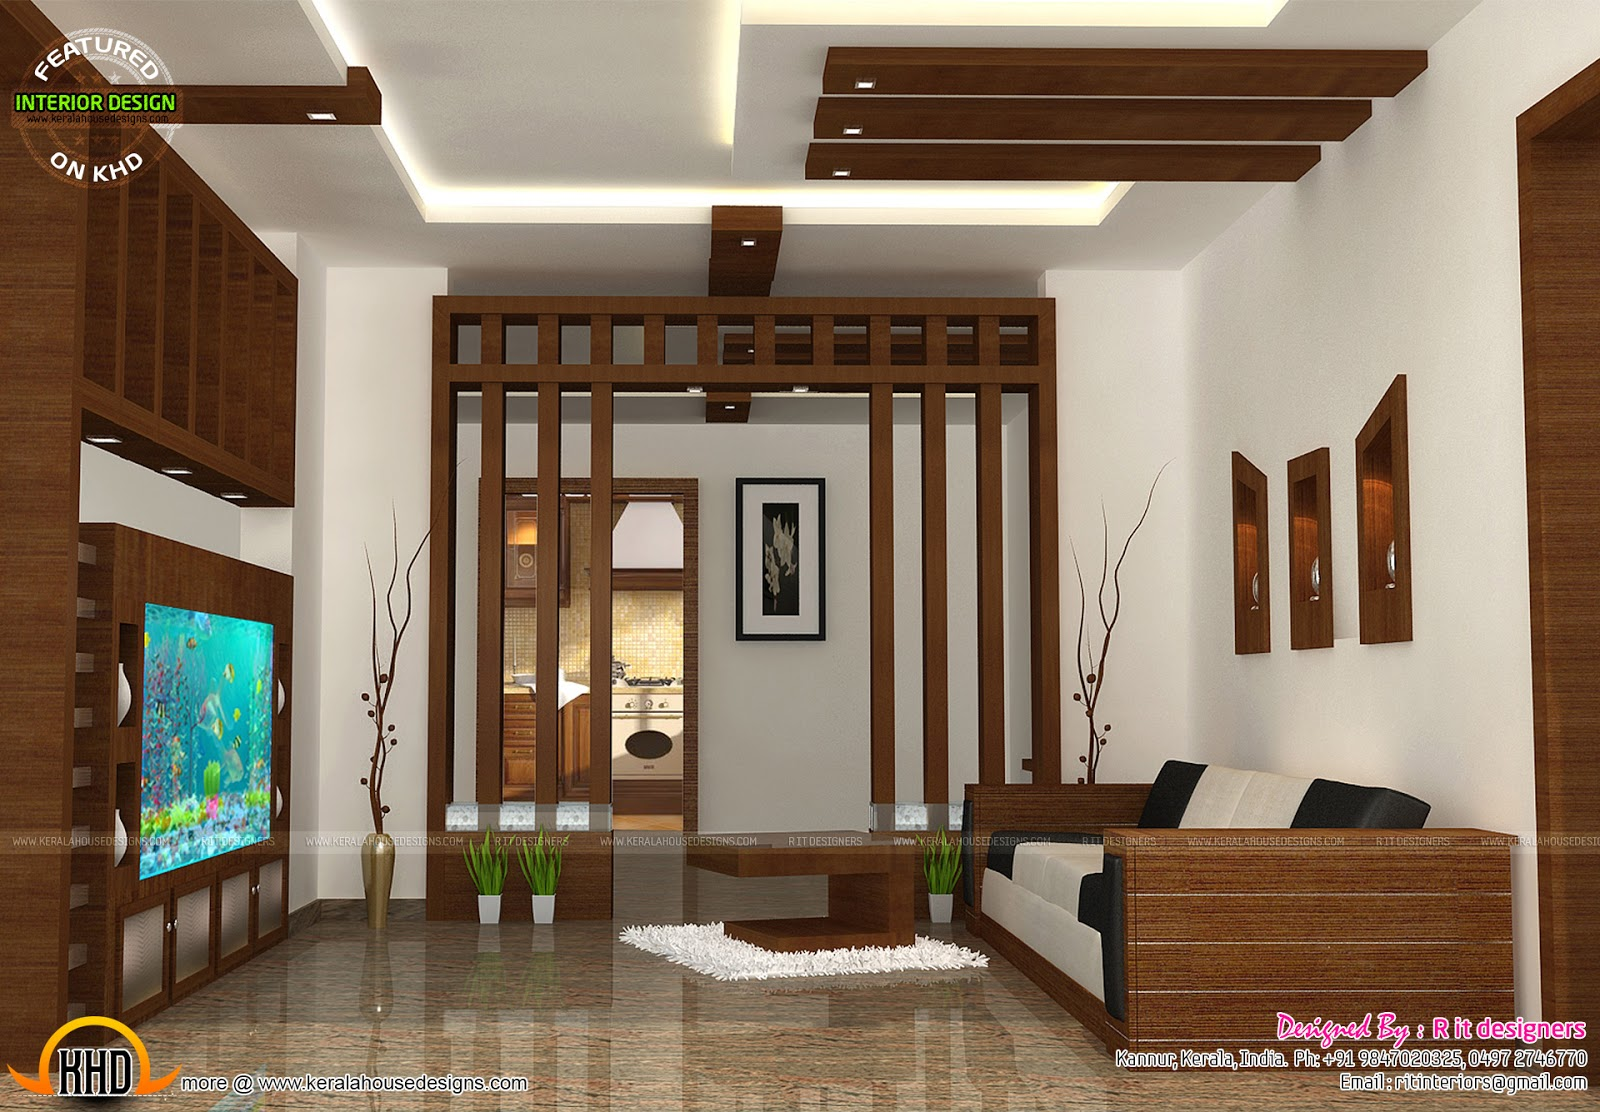 Wooden finish interiors kerala home design and floor plans for Interior design model homes pictures